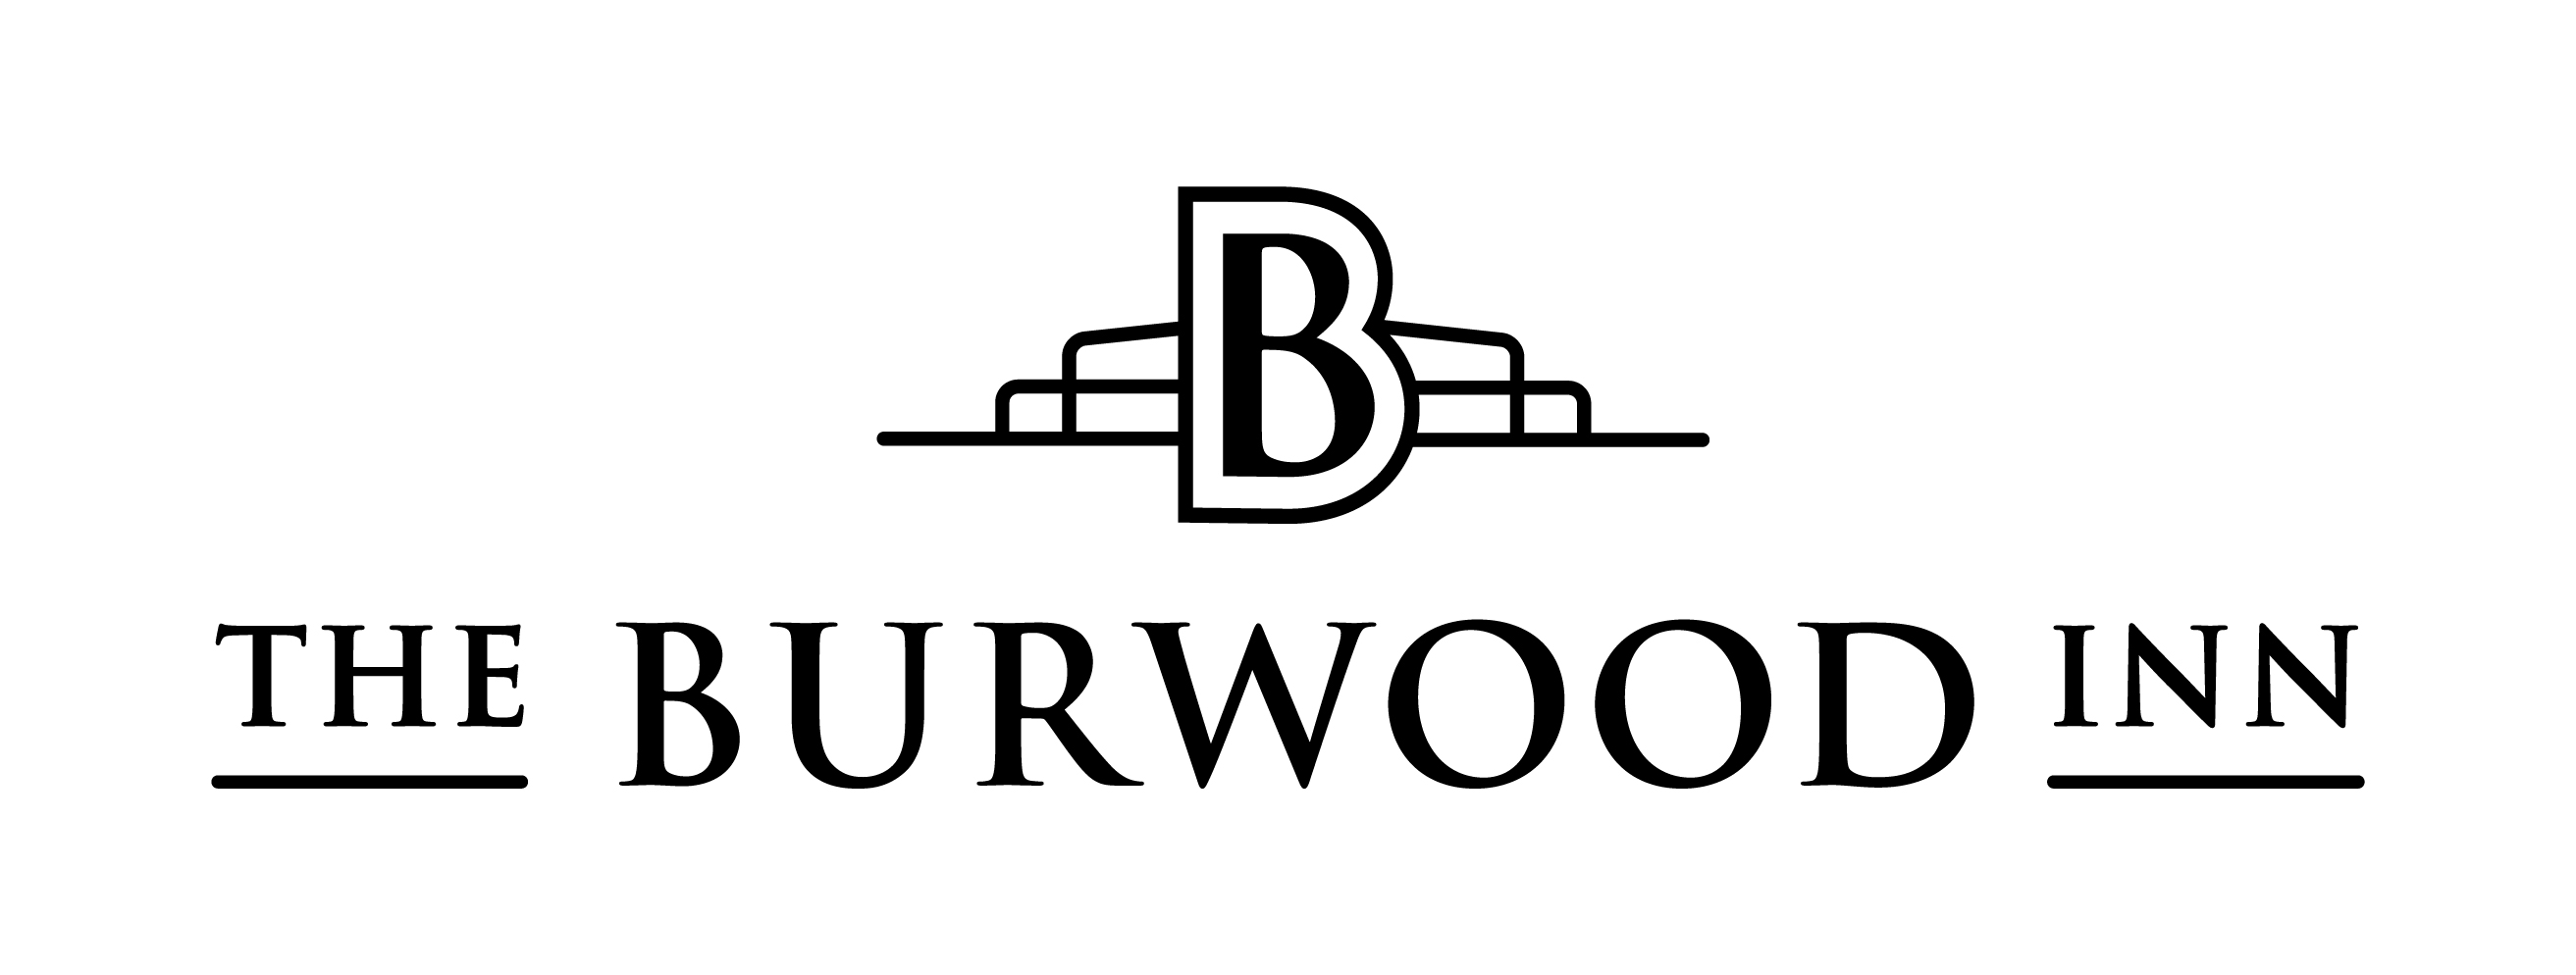 Burwood Inn Hotel - Whitsundays Accommodation